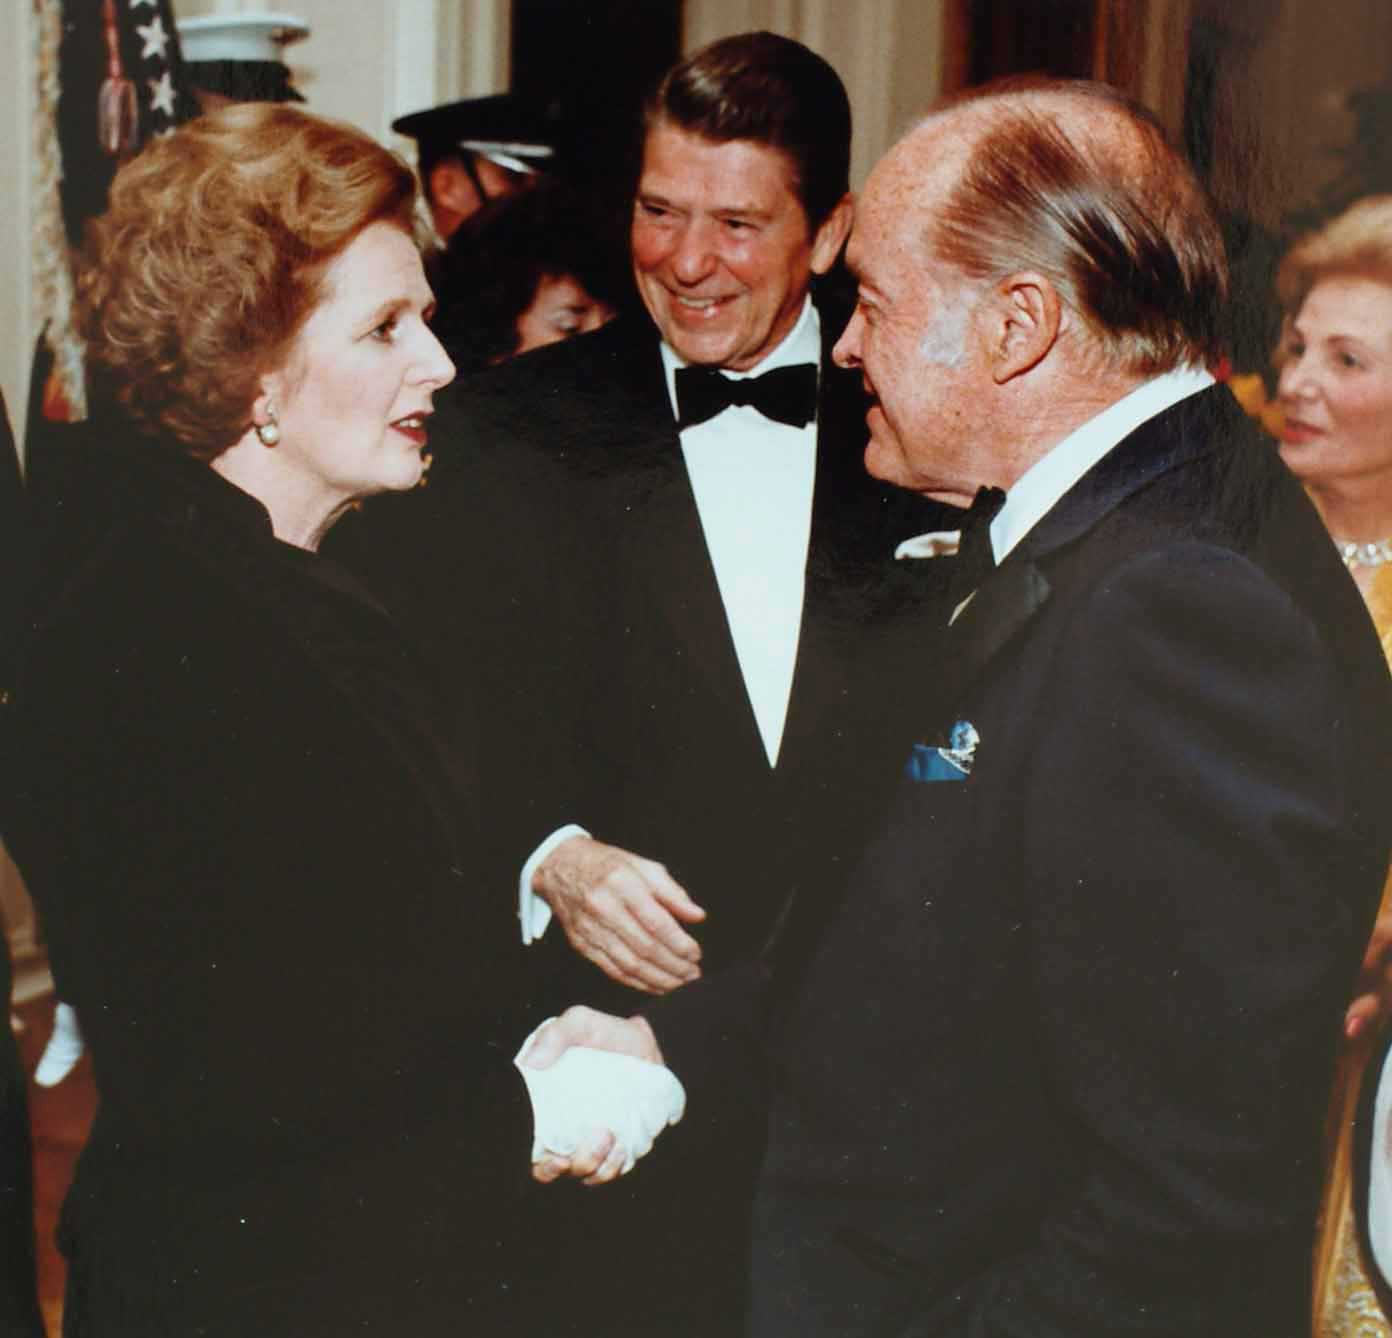 https://i2.wp.com/upload.wikimedia.org/wikipedia/commons/d/d8/Thatcher_with_Reagan_and_Bob_Hope.jpg